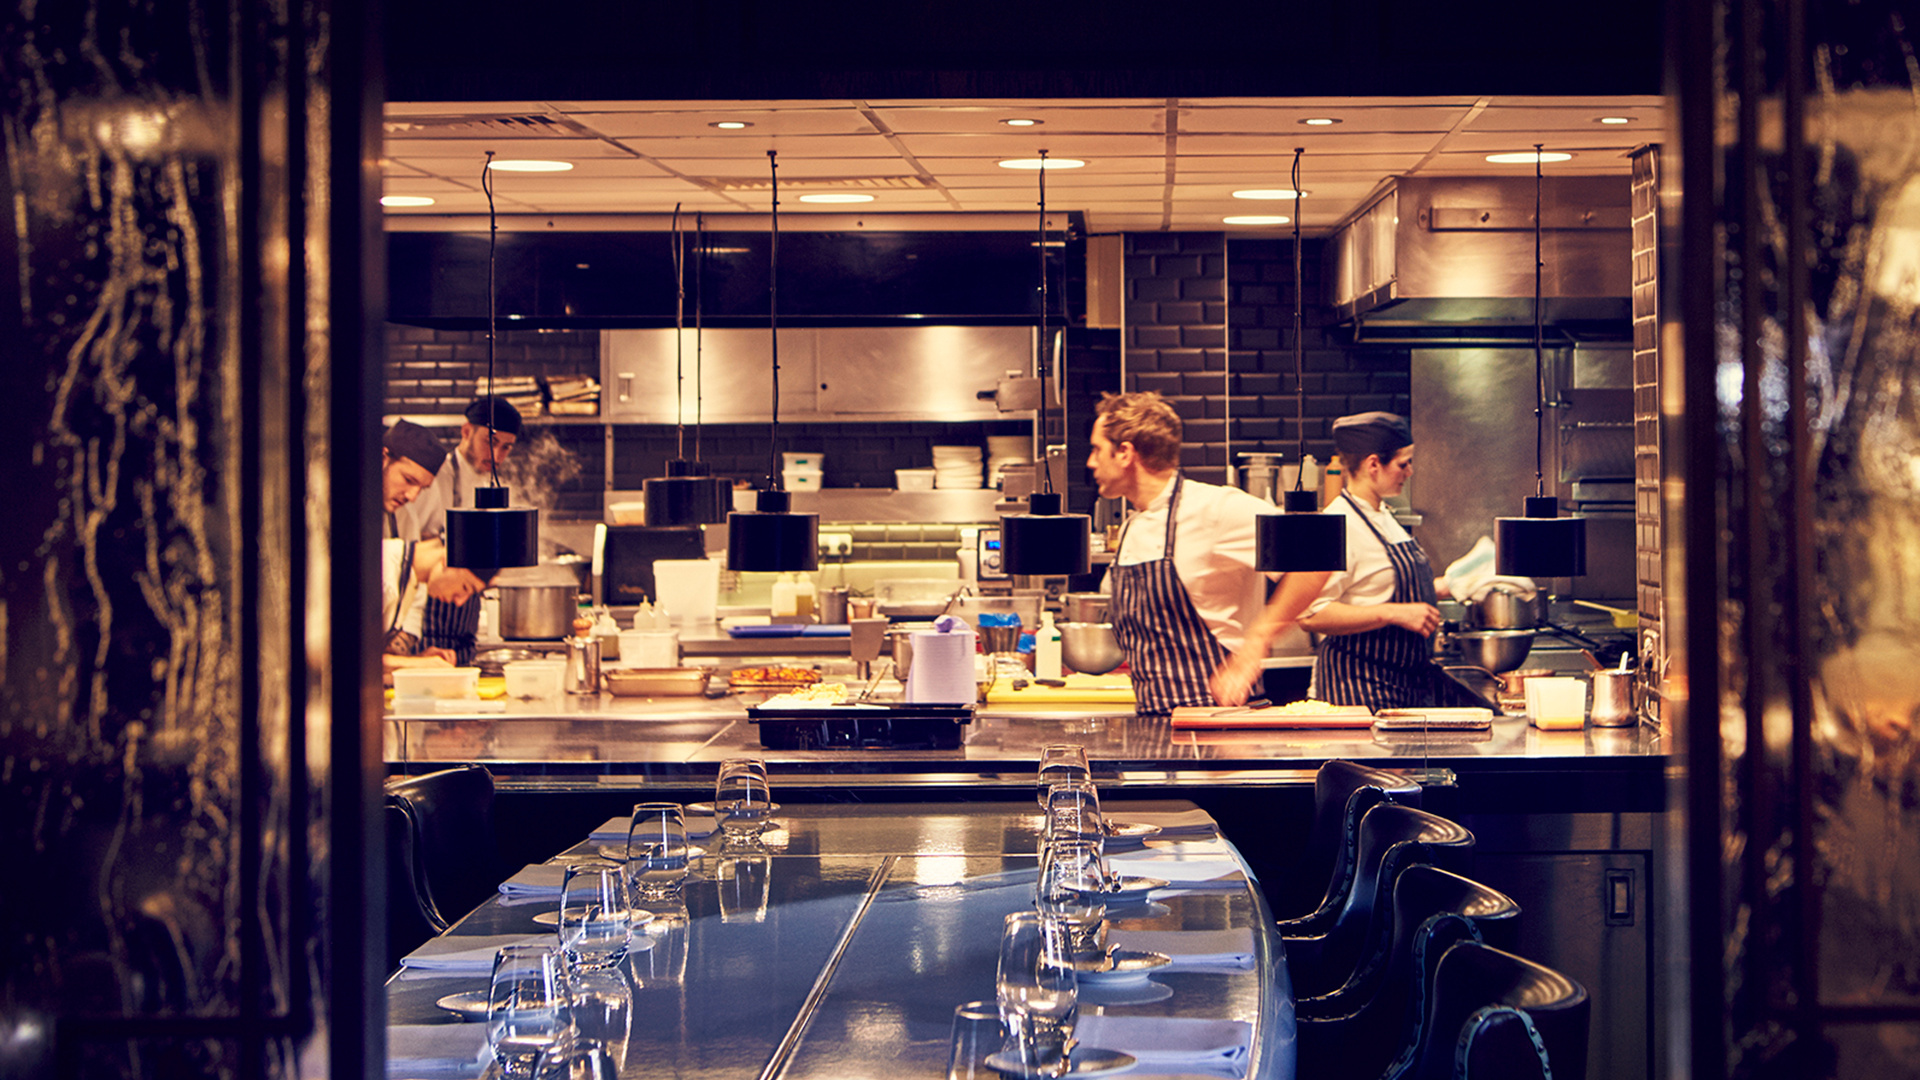 A view into the kitchen at Marcus at The Berkeley